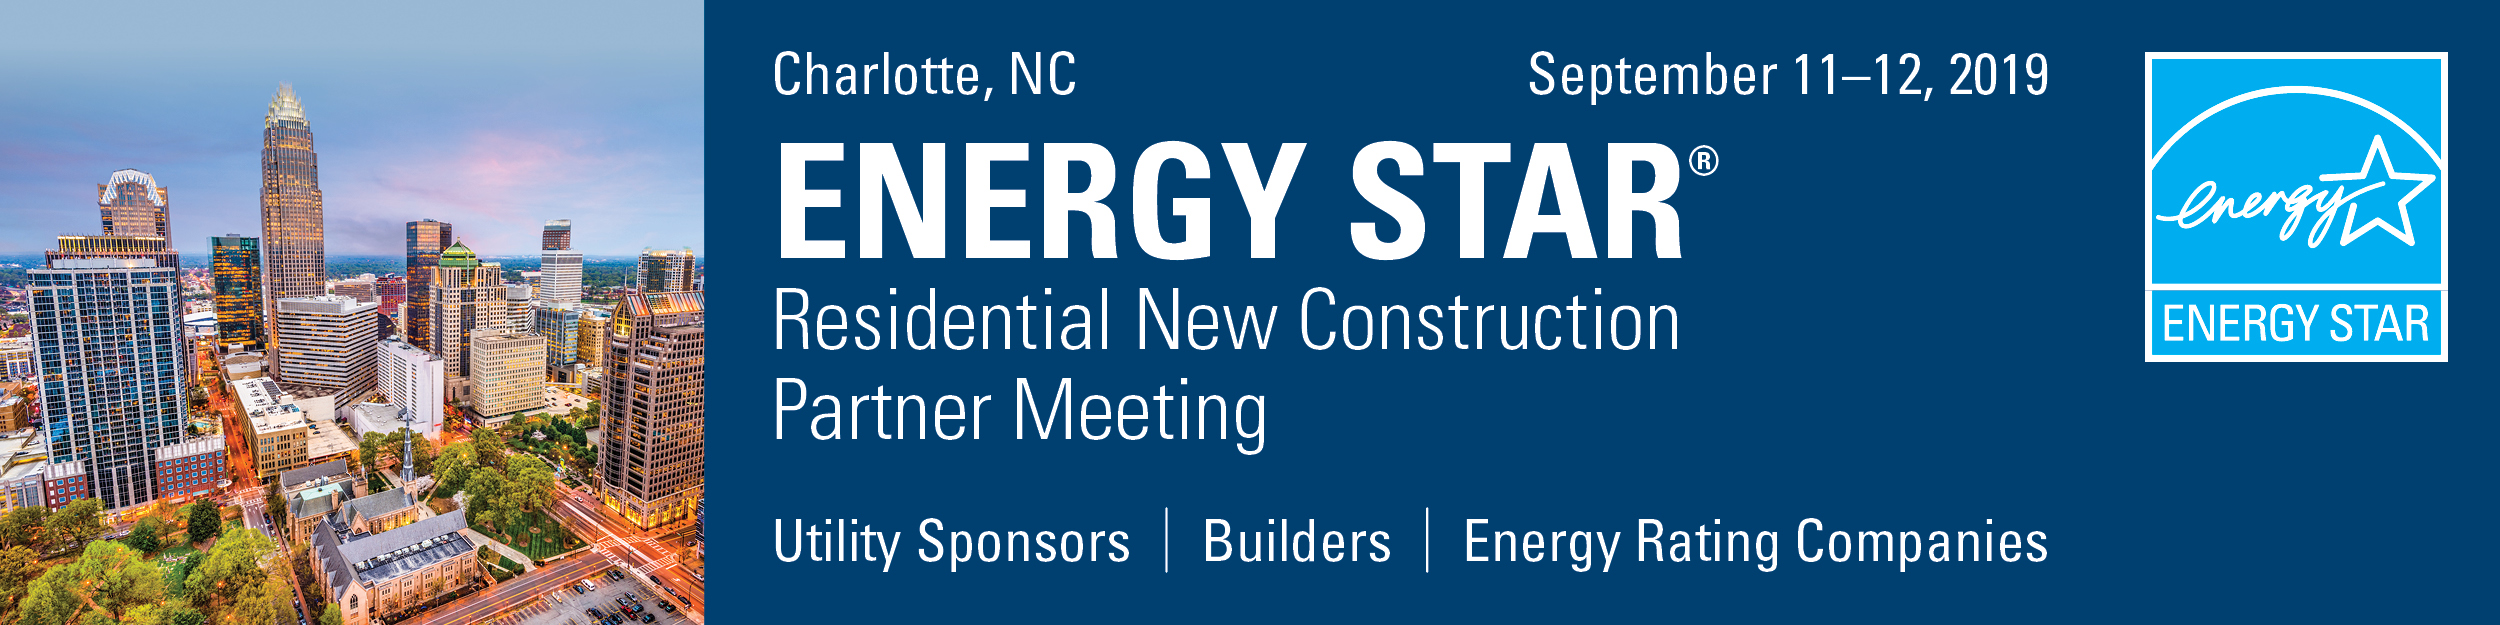 ENERGY STAR Residential New Construction Partner Meeting